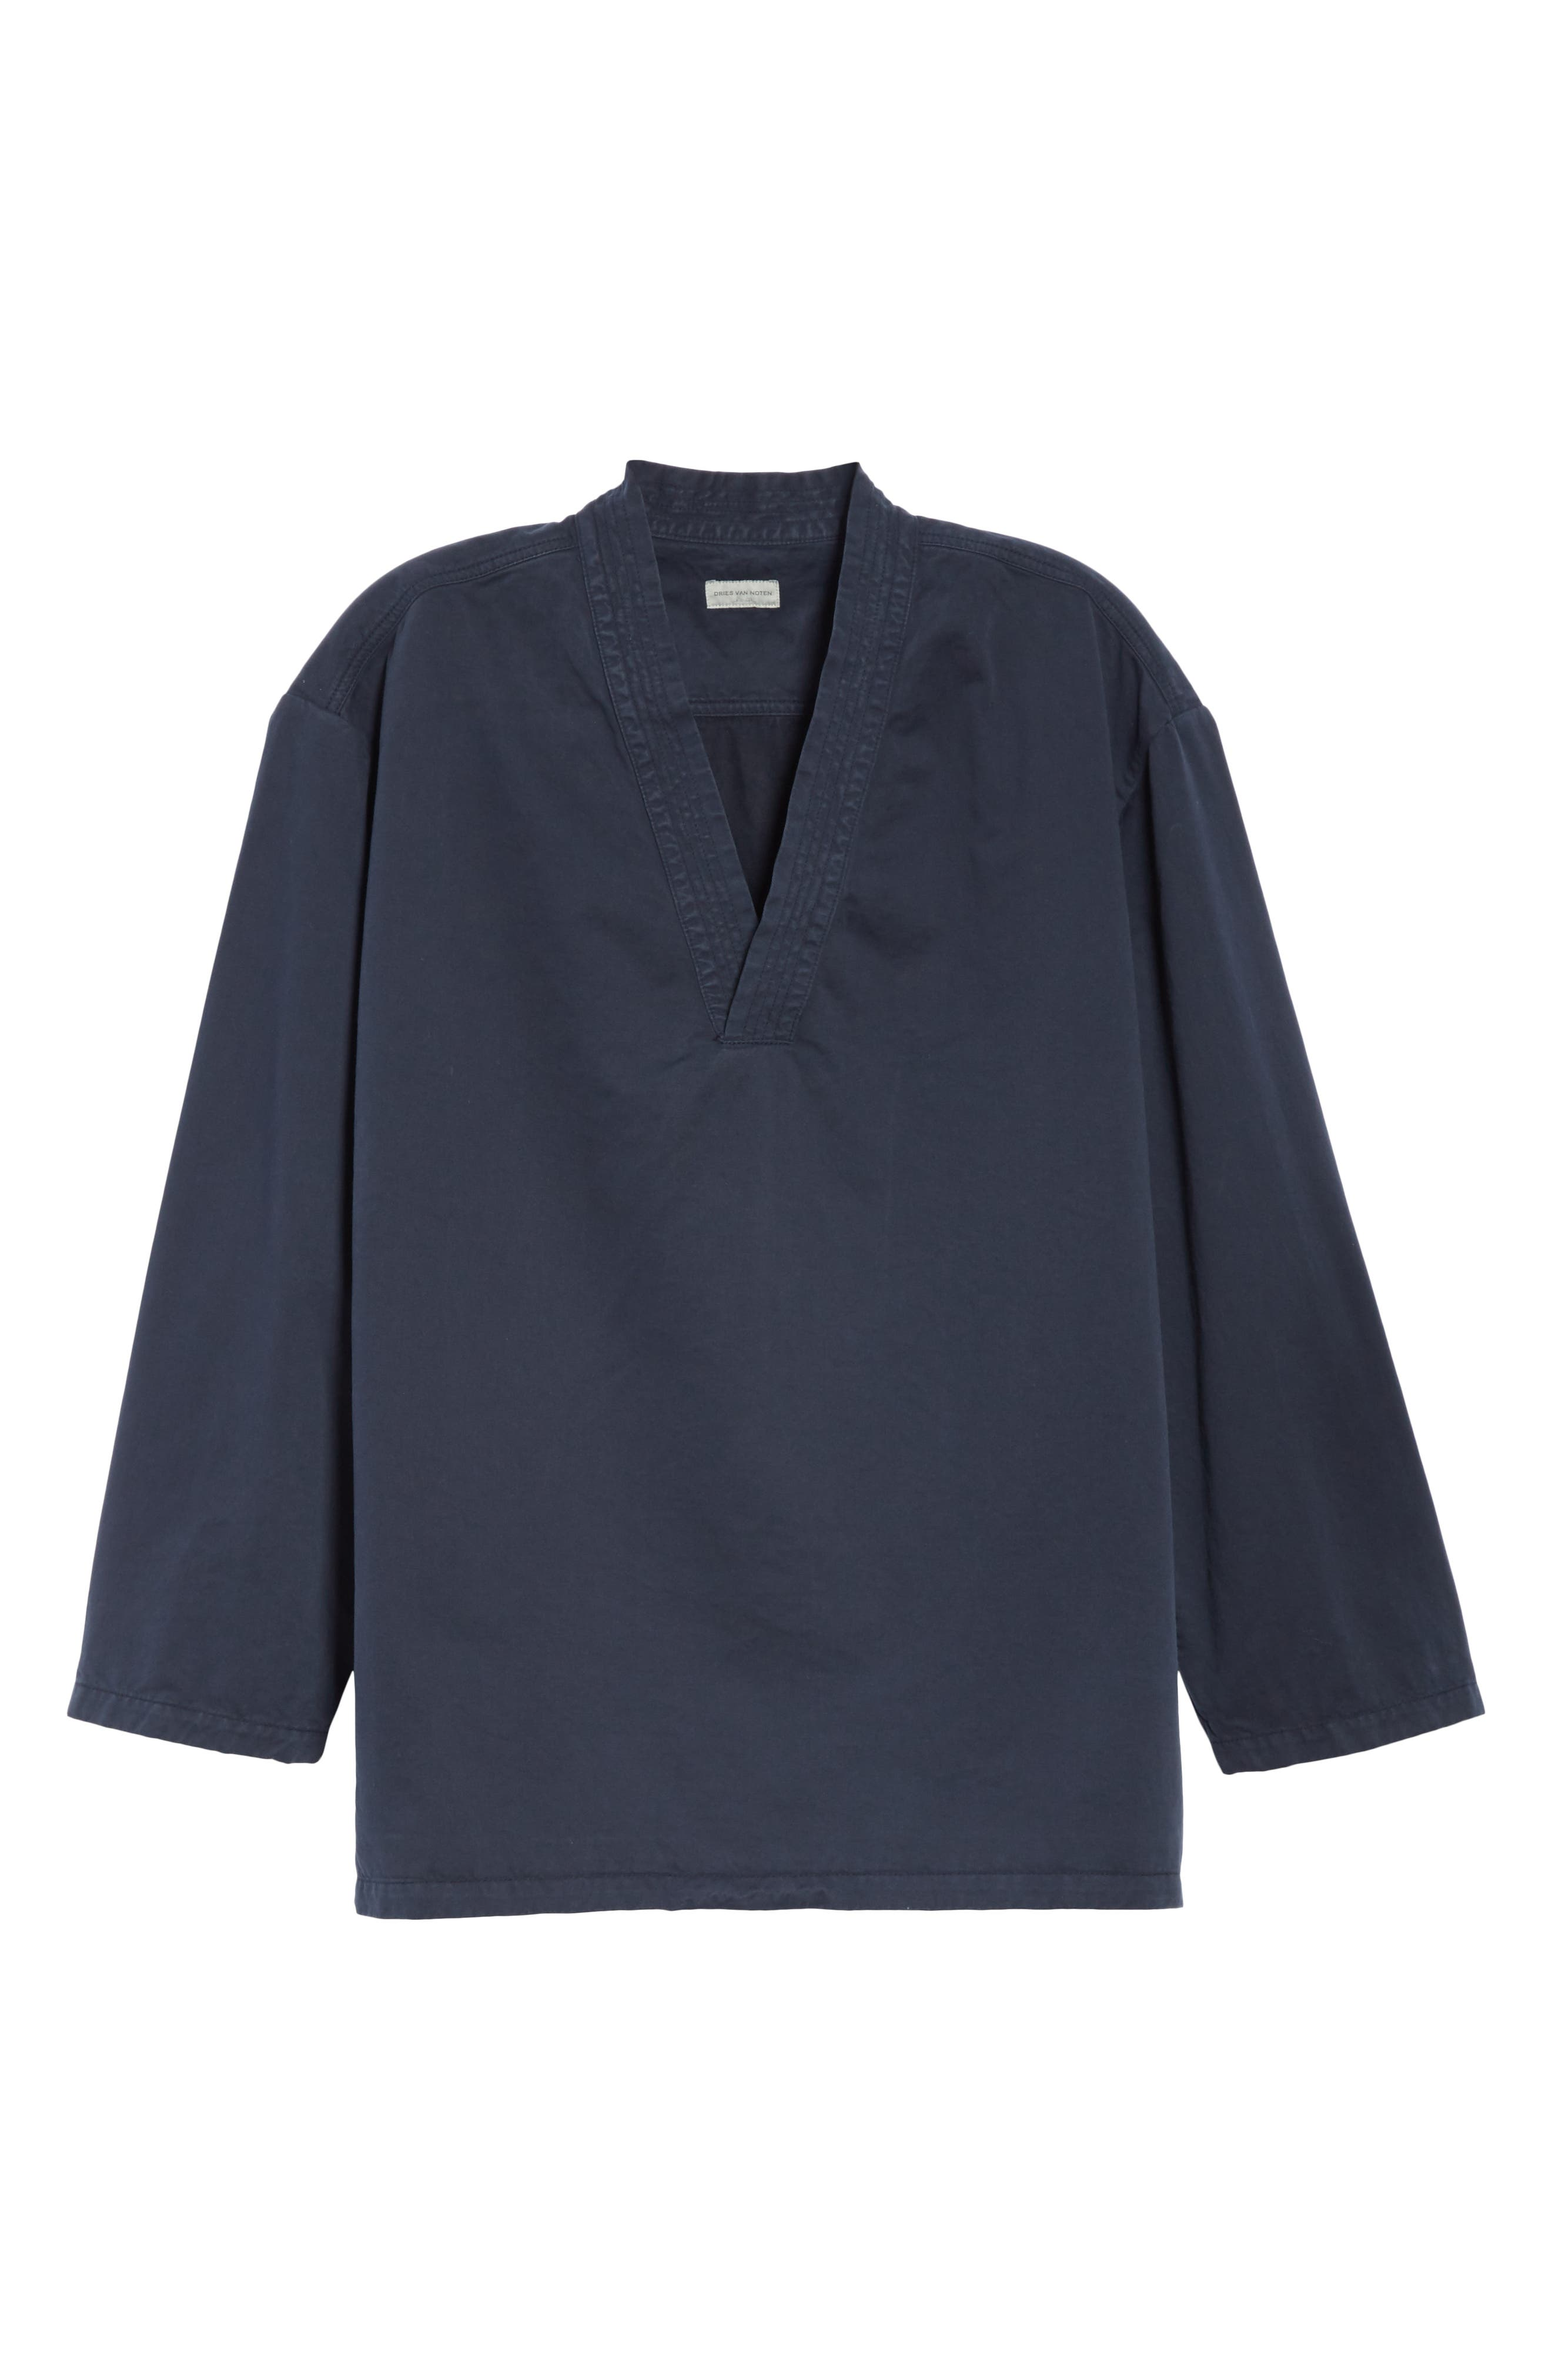 Canis Bis Kimono Pullover,                             Alternate thumbnail 6, color,                             NAVY 509